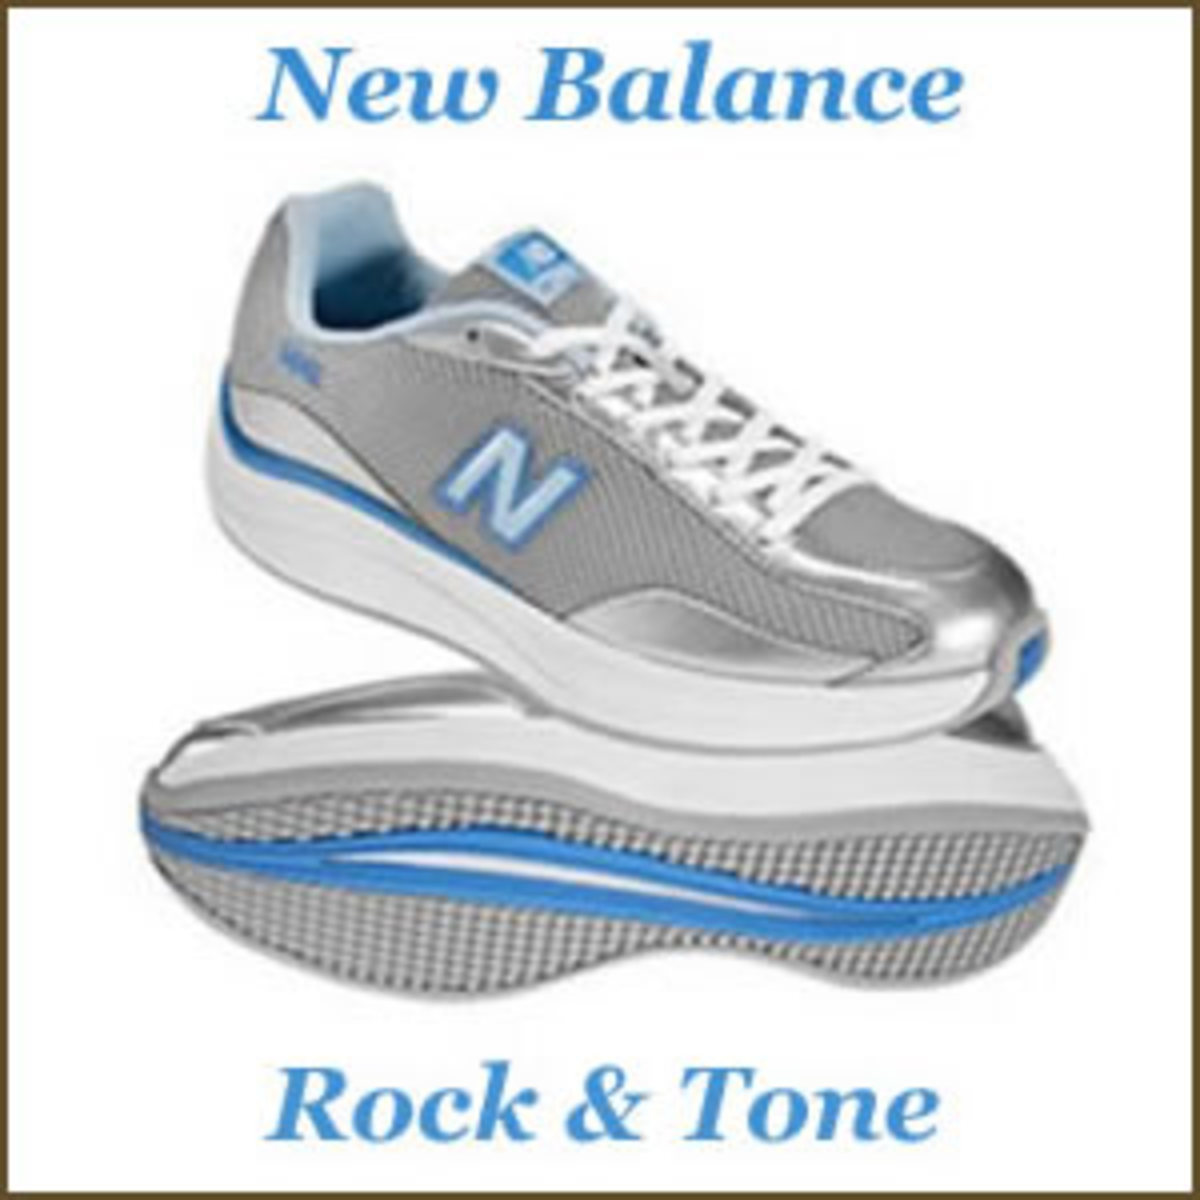 Rock & Tone from New Balance